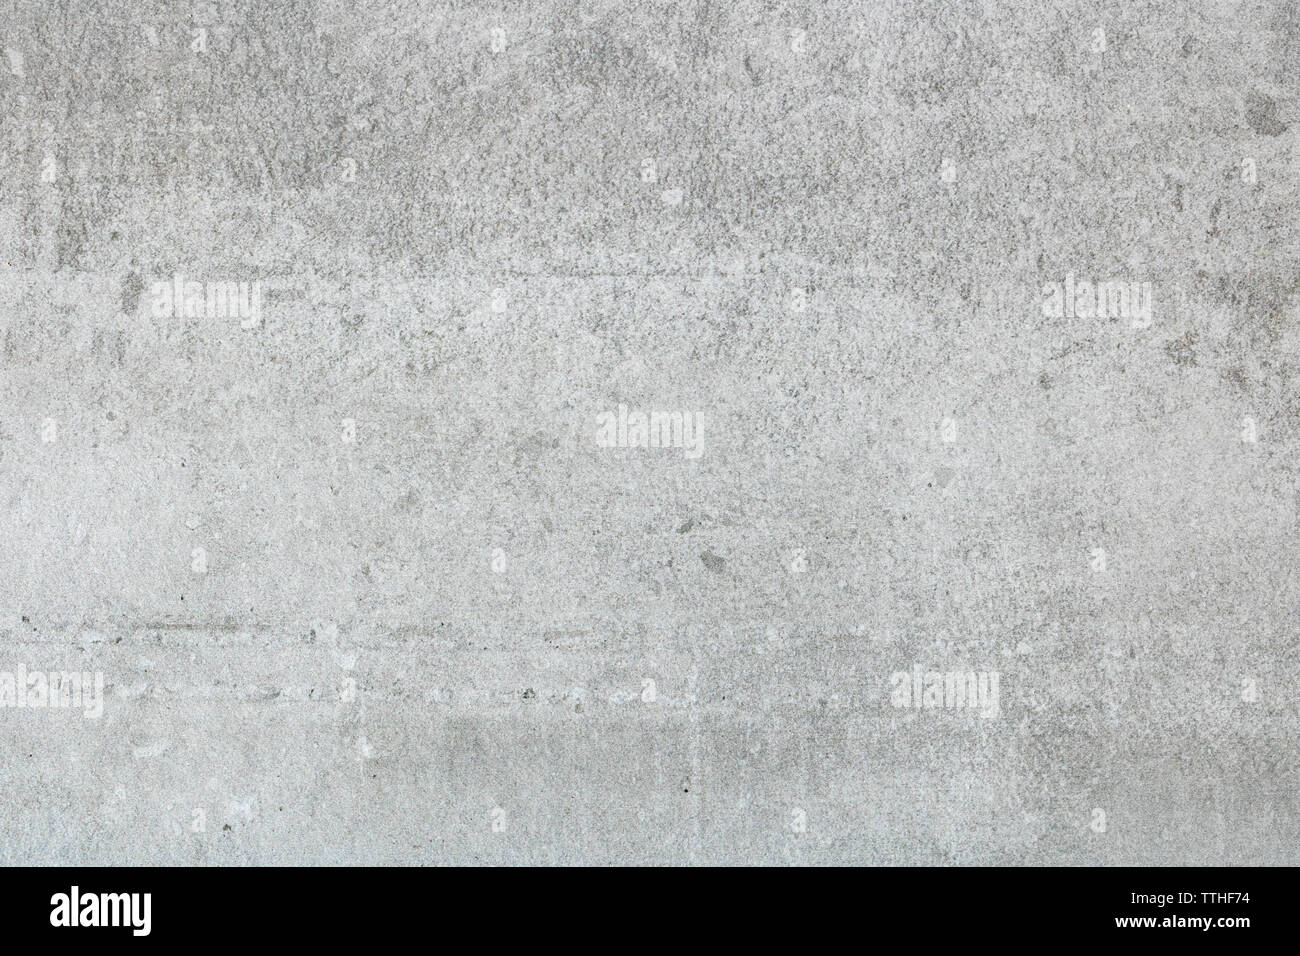 Gray graphic resource, waxed concrete background - Stock Image